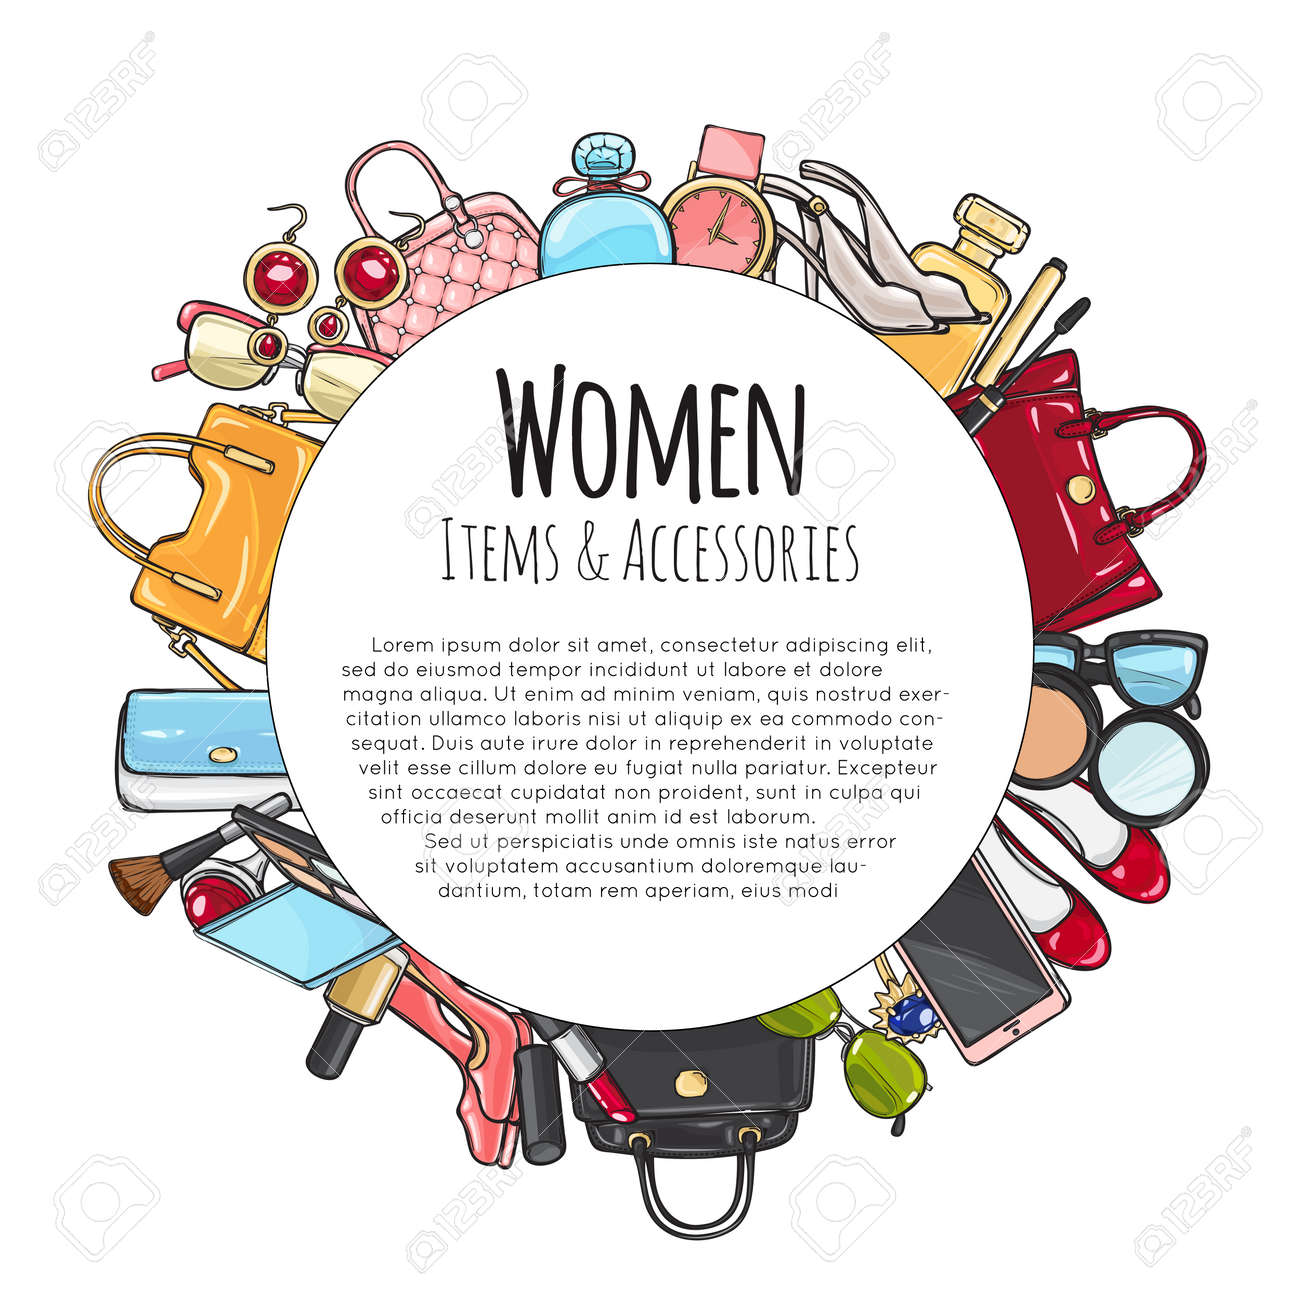 Women Items and Accessories Round Frame. Cosmetics. - 100218577